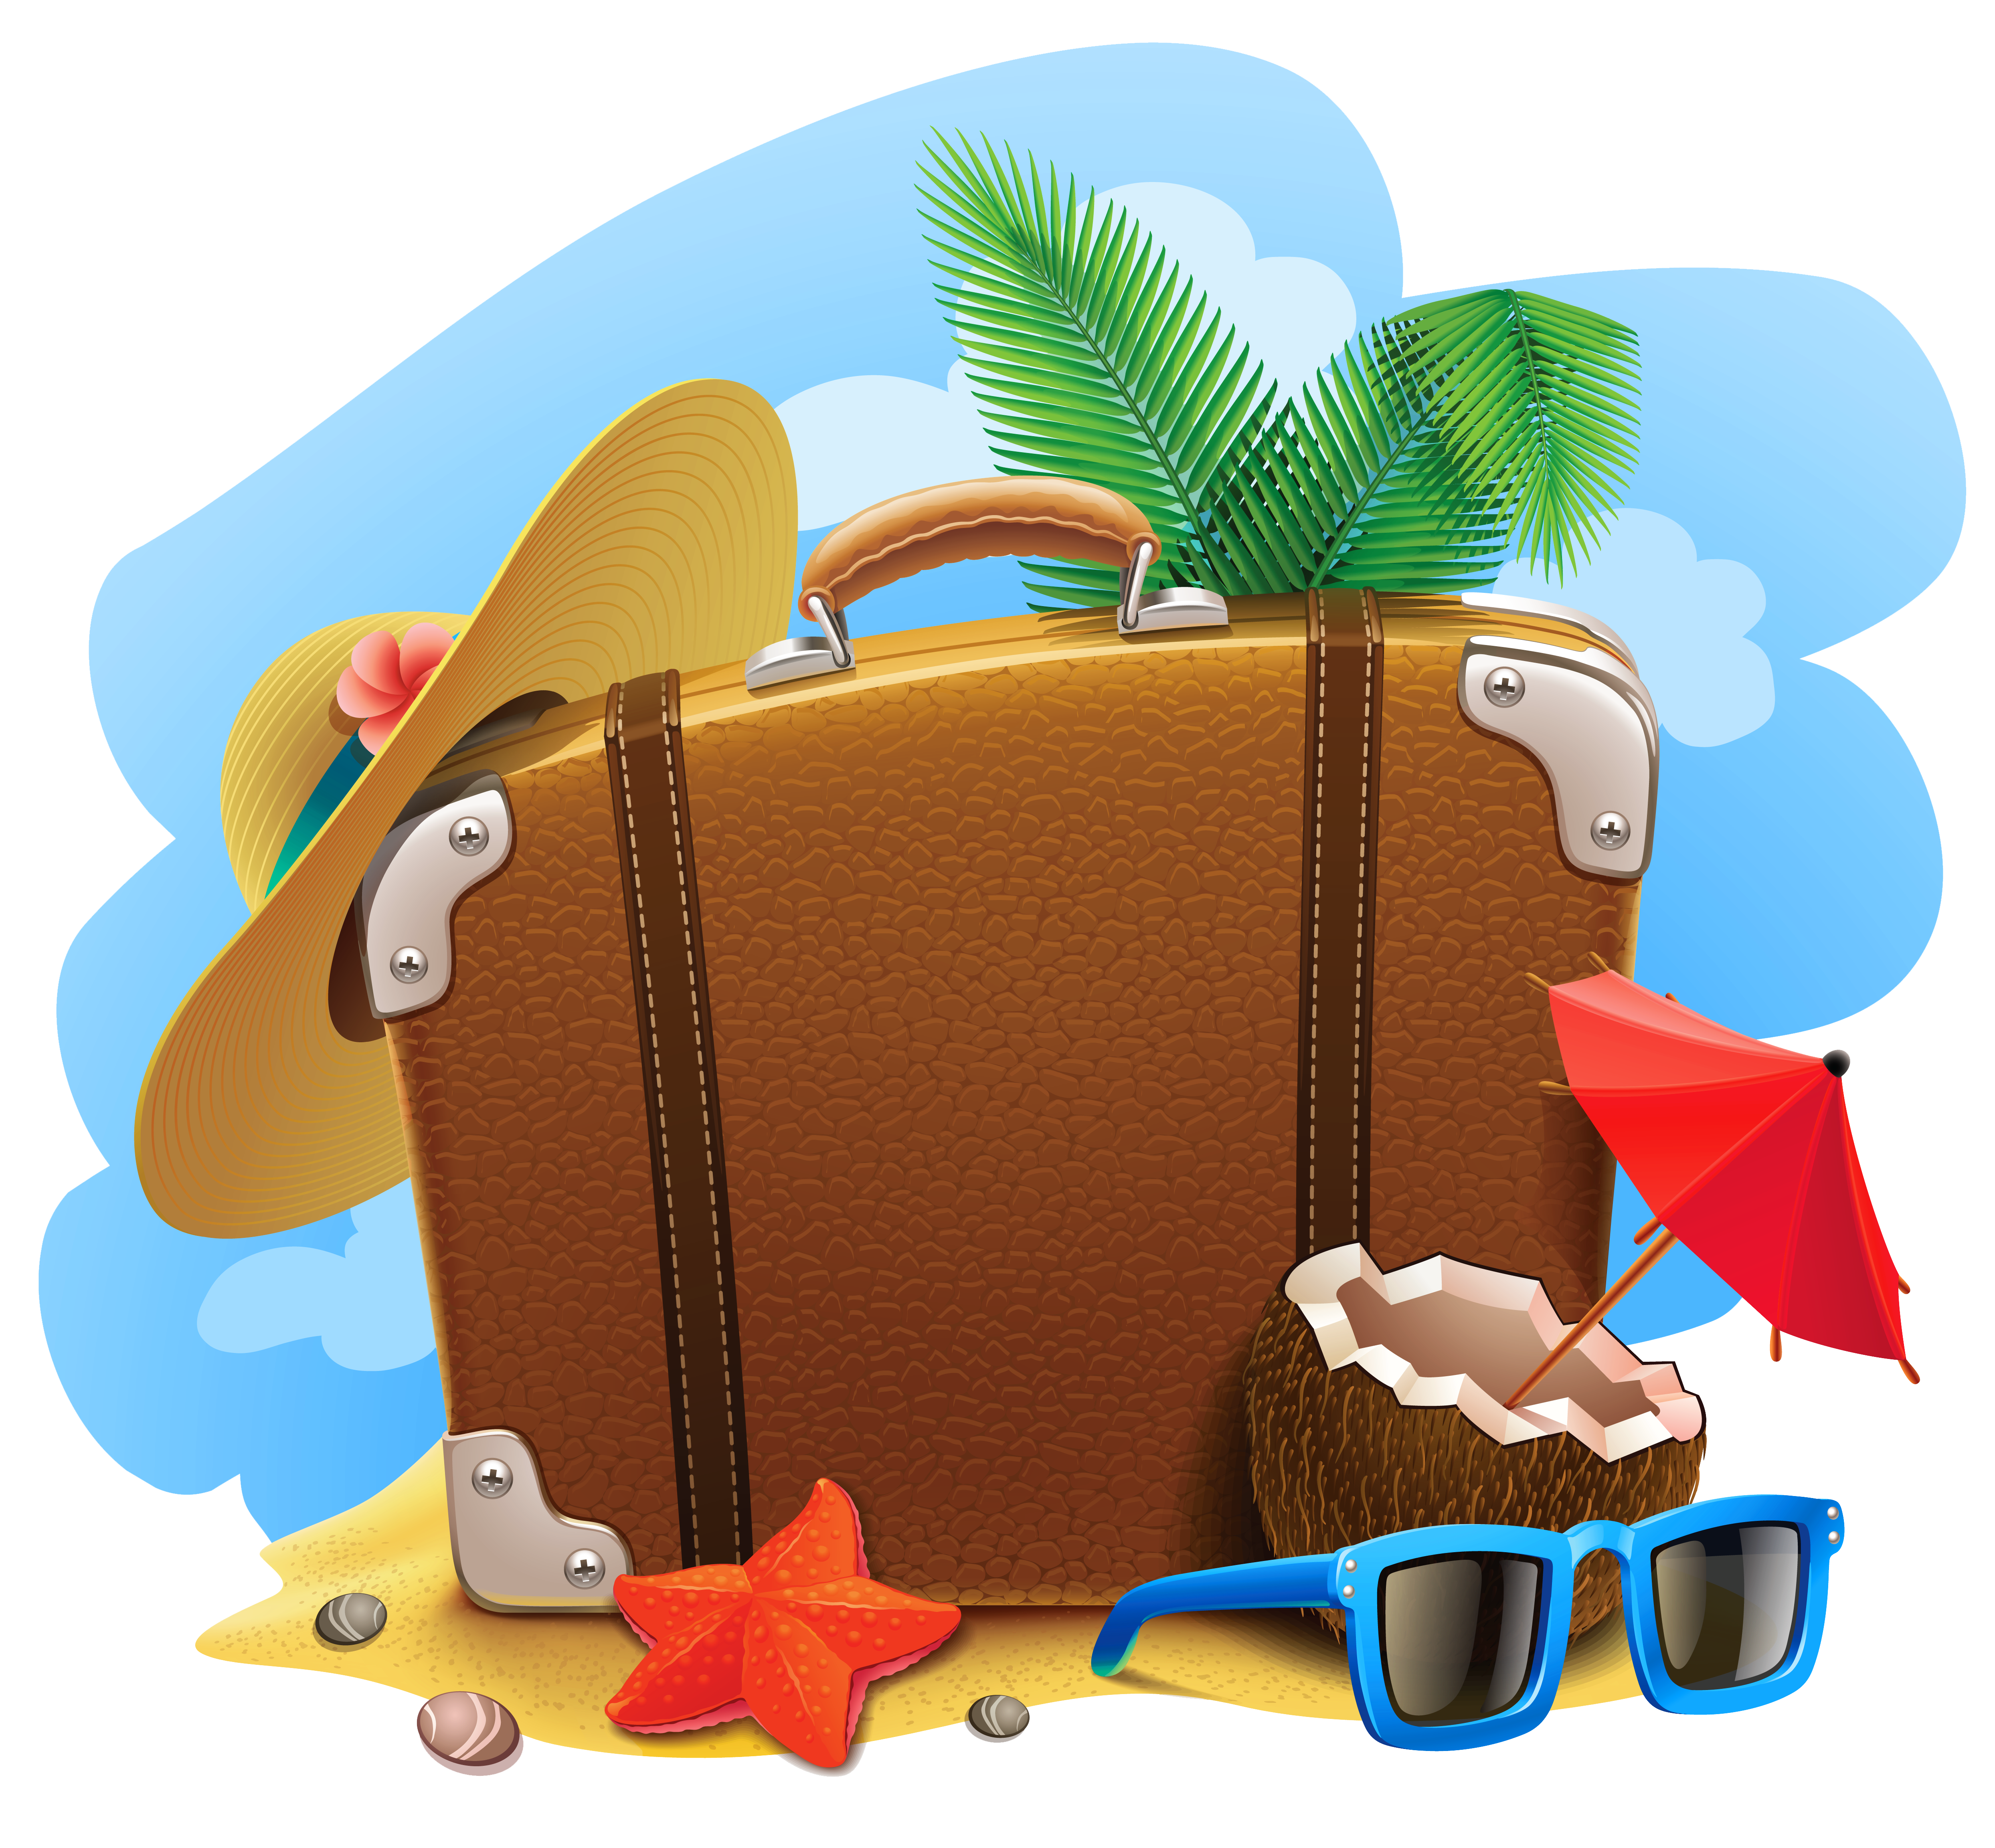 Vacation bingo clipart images jpg freeuse download Download Decorative Summer Picture Travel Vacation Suitcase ... jpg freeuse download